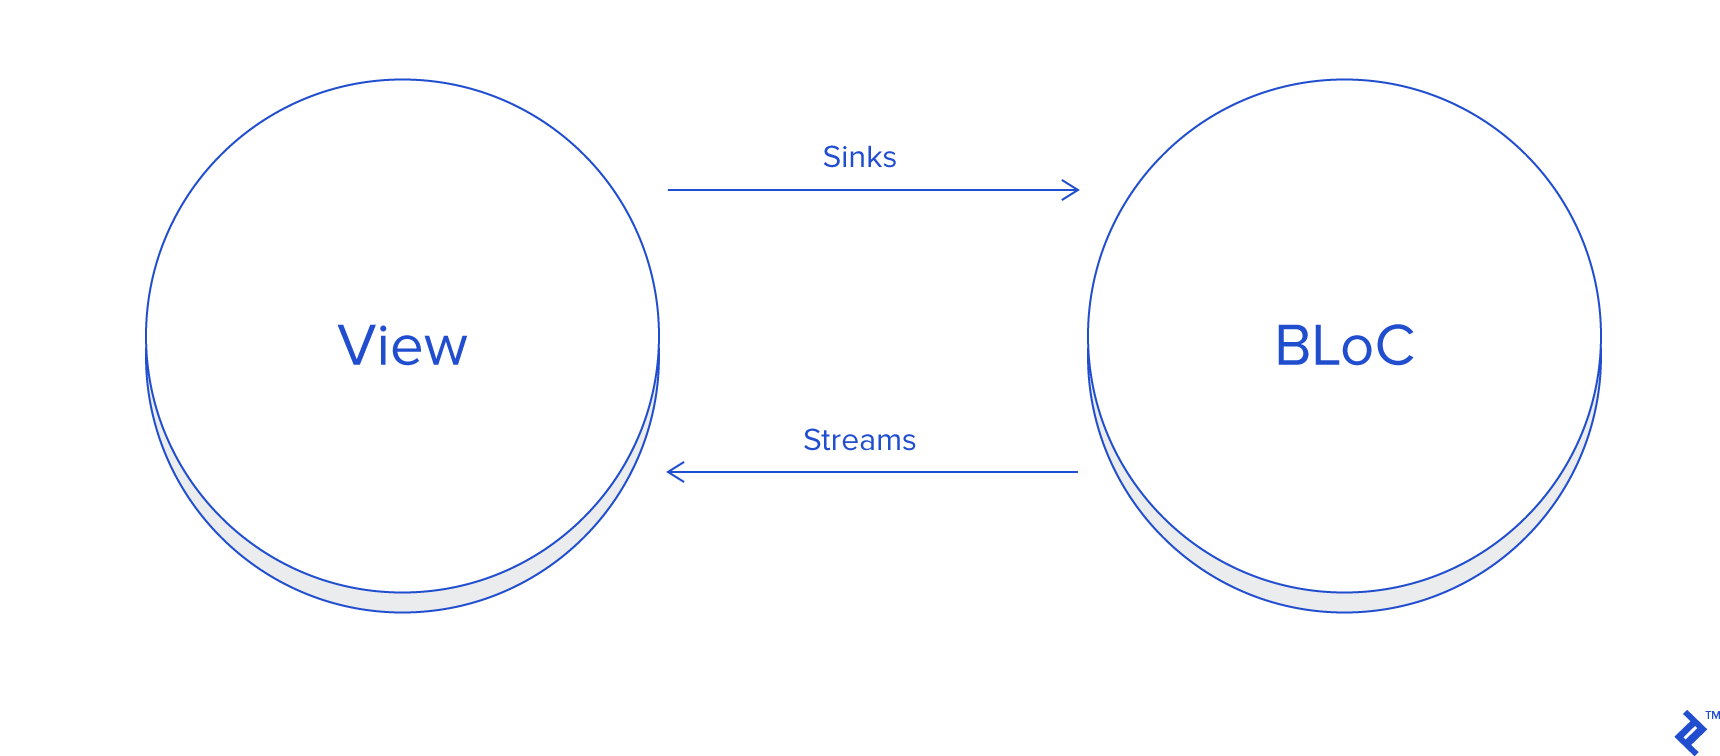 Diagram of sinks and streams interacting between the BLoC and view